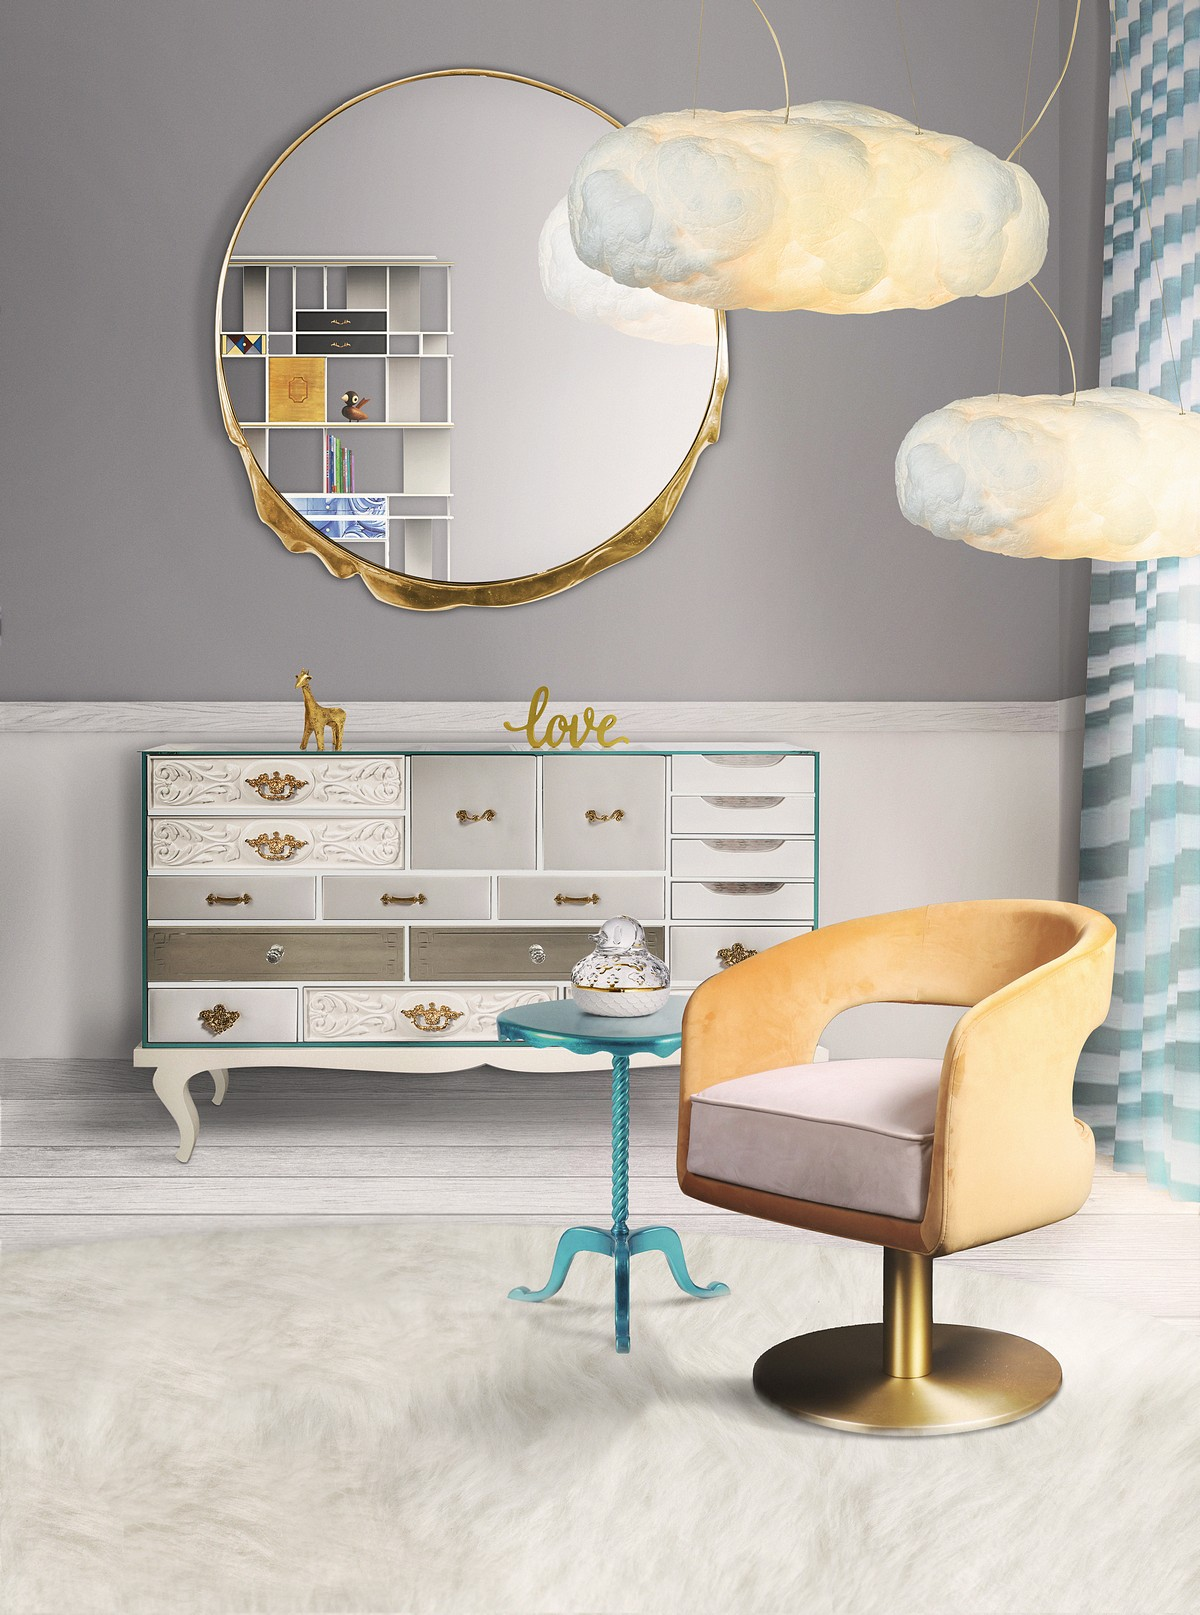 Discover The Best Sellers of the Year 2017 | Brings to you the ultimate selection of this year's best sellers in the word of design. #interiordesign #bestsellers #homedecor #decortrends #designworld